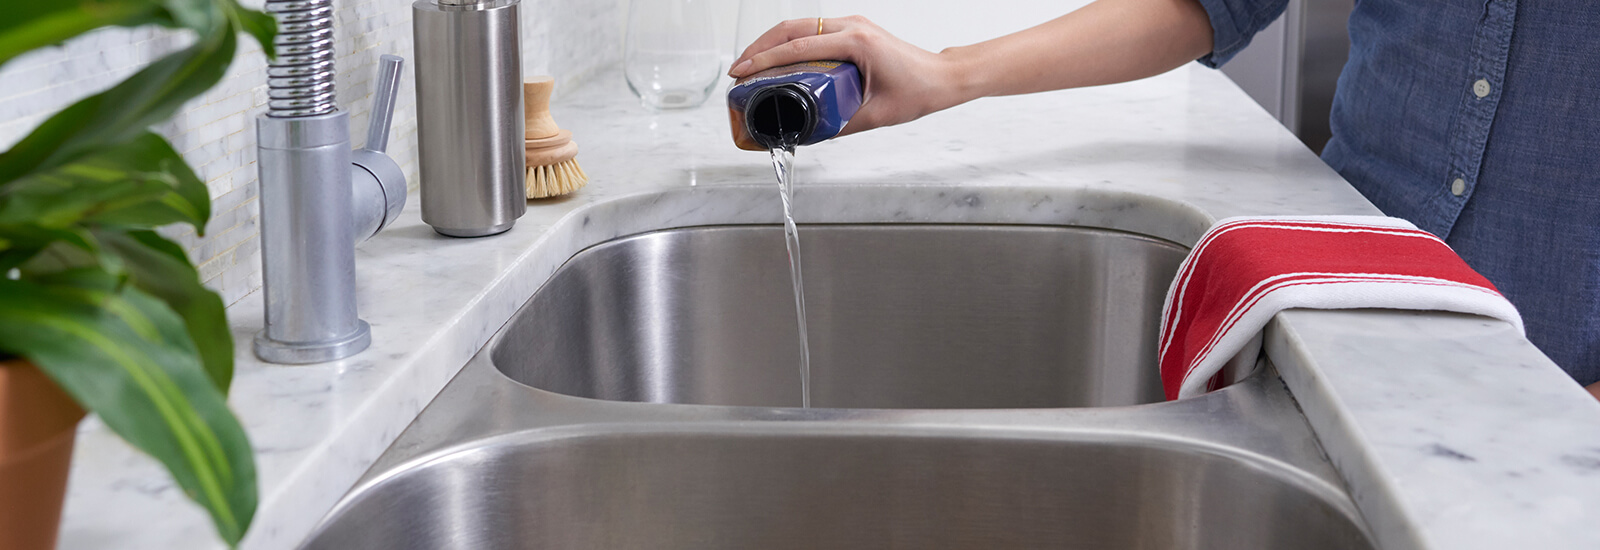 Brilliant How To Unclog Your Kitchen Sink In 3 Steps Drano Best Image Libraries Thycampuscom